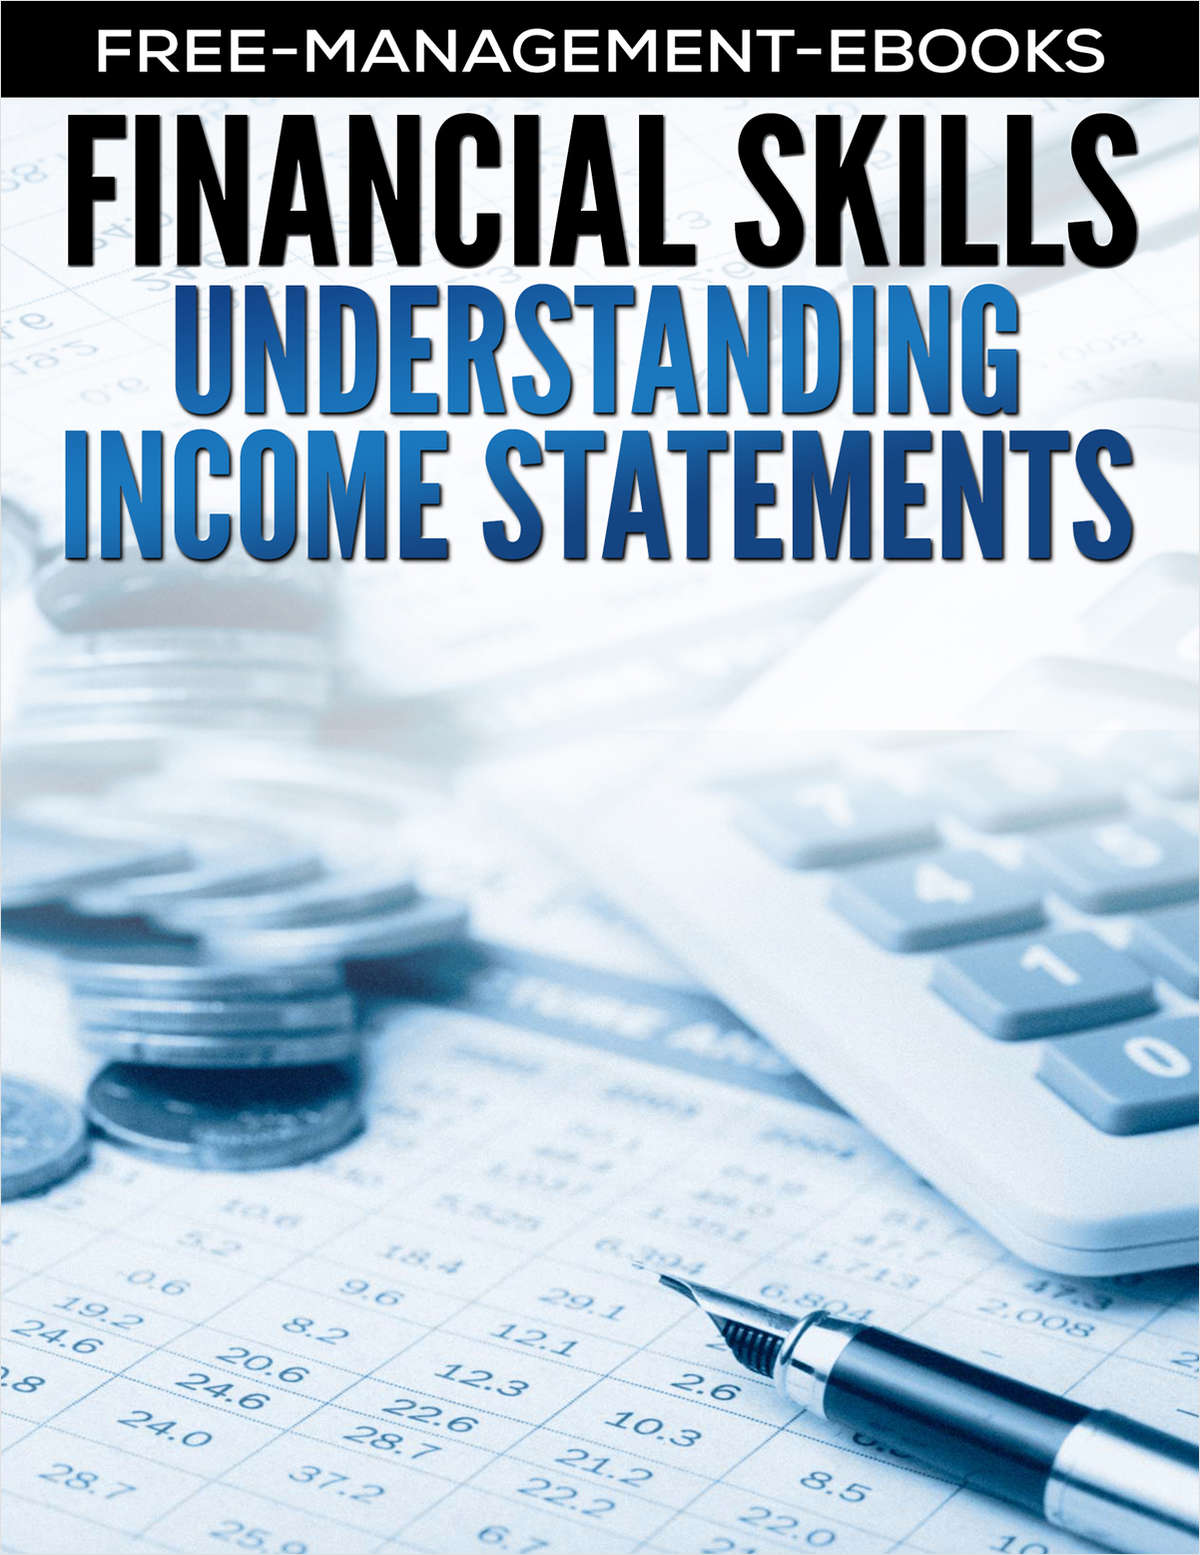 Income Statements -- Developing Your Finance Skills